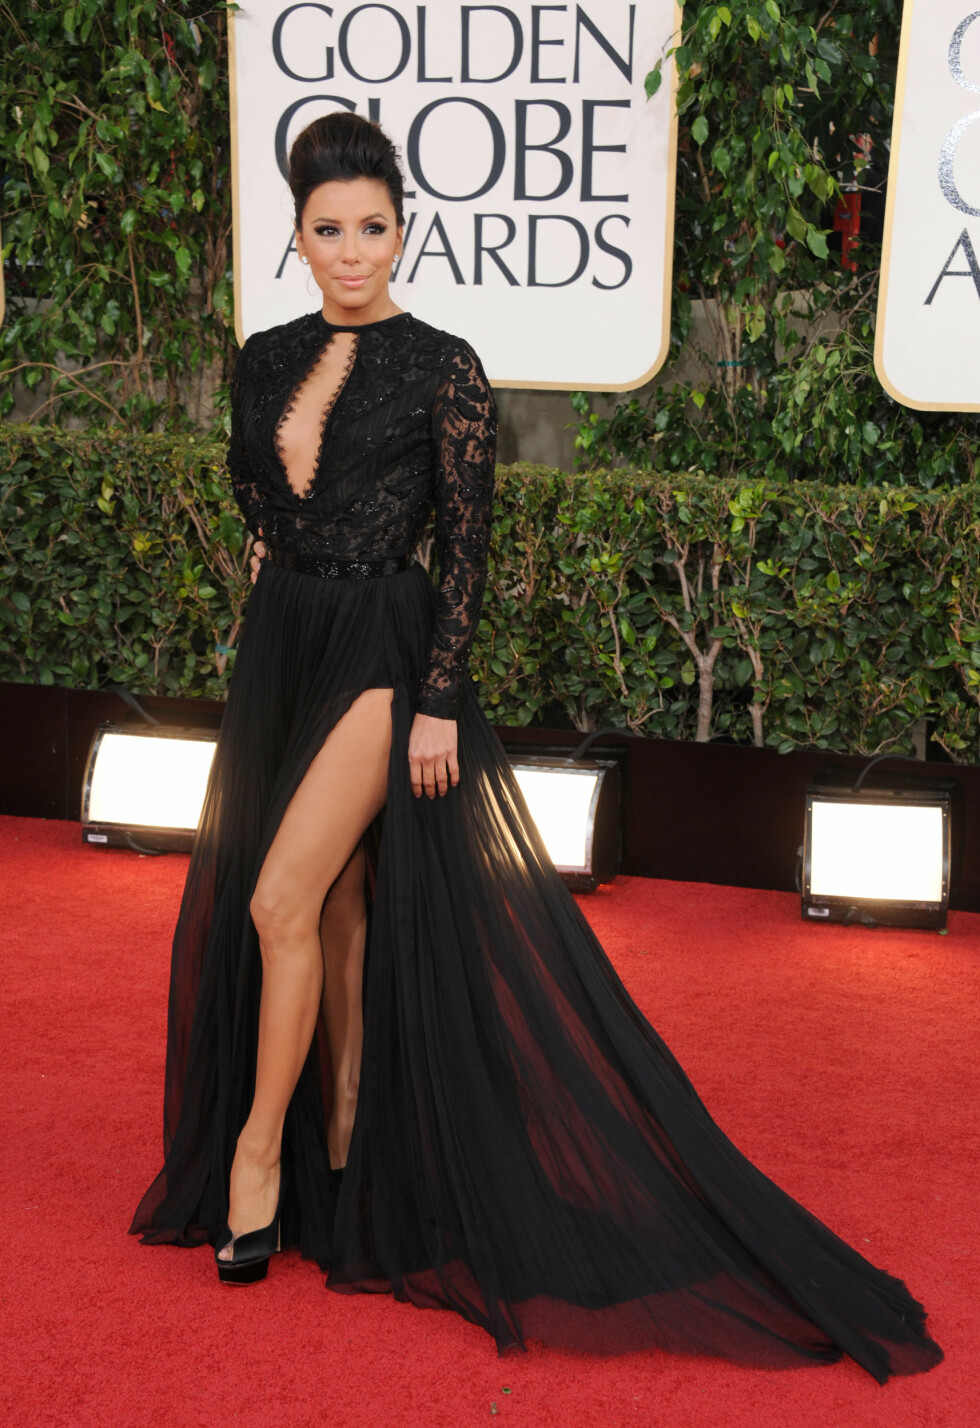 Eva Longoria, Golden Globe Awards, 2013. Foto: Ap